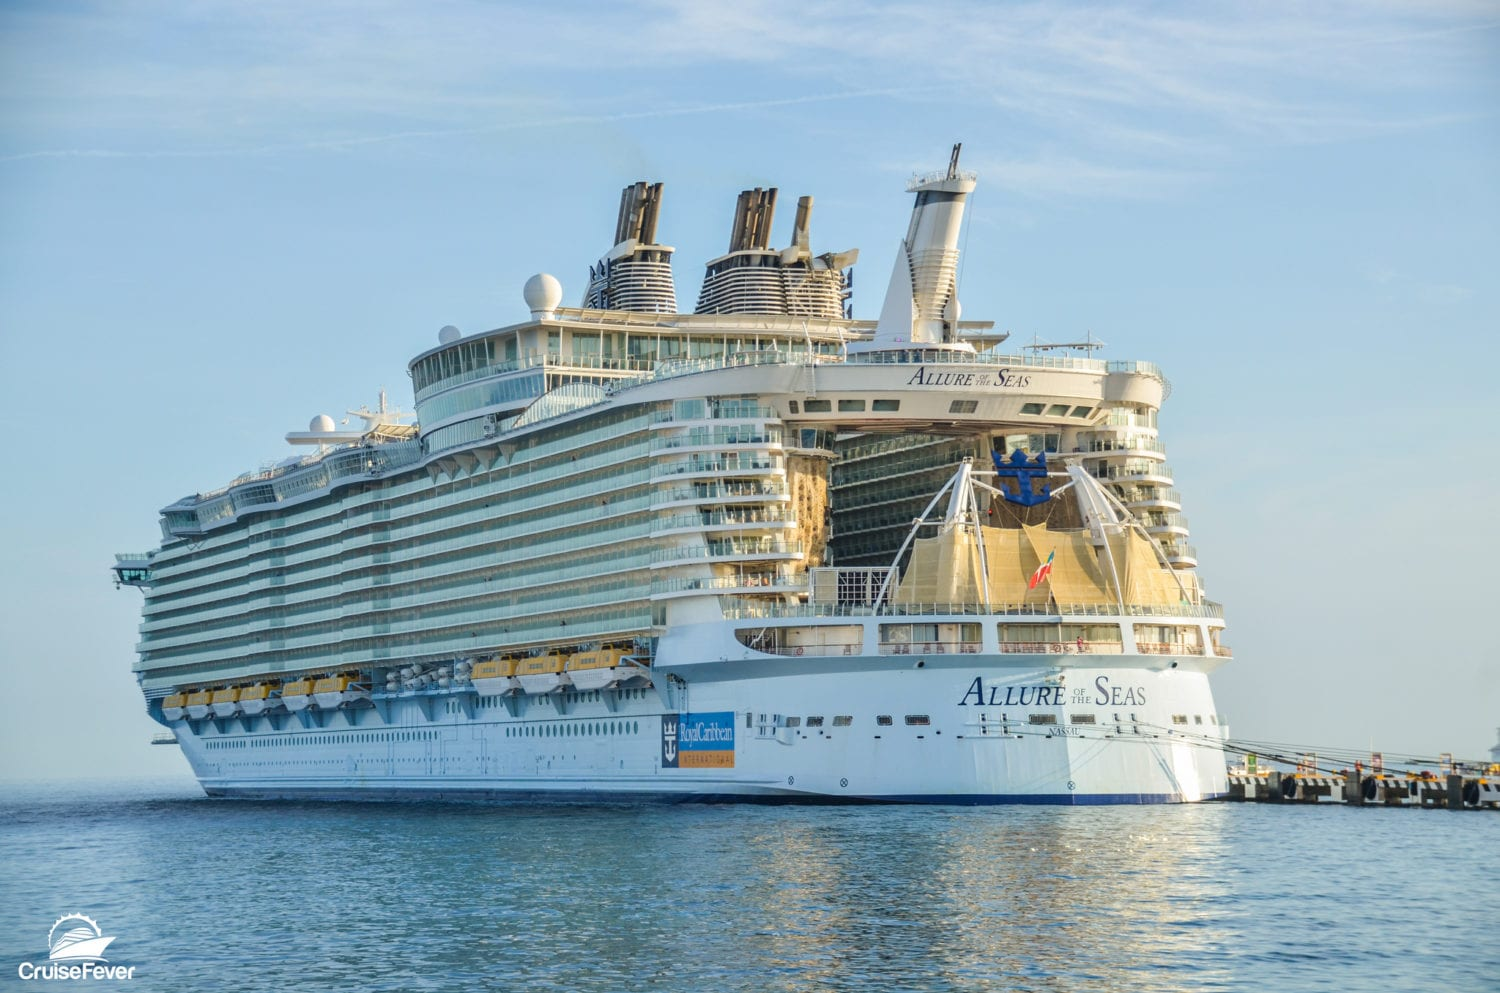 Newest Cruise Ships 2020.One Of The World S Largest Cruise Ships Will Sail To Europe